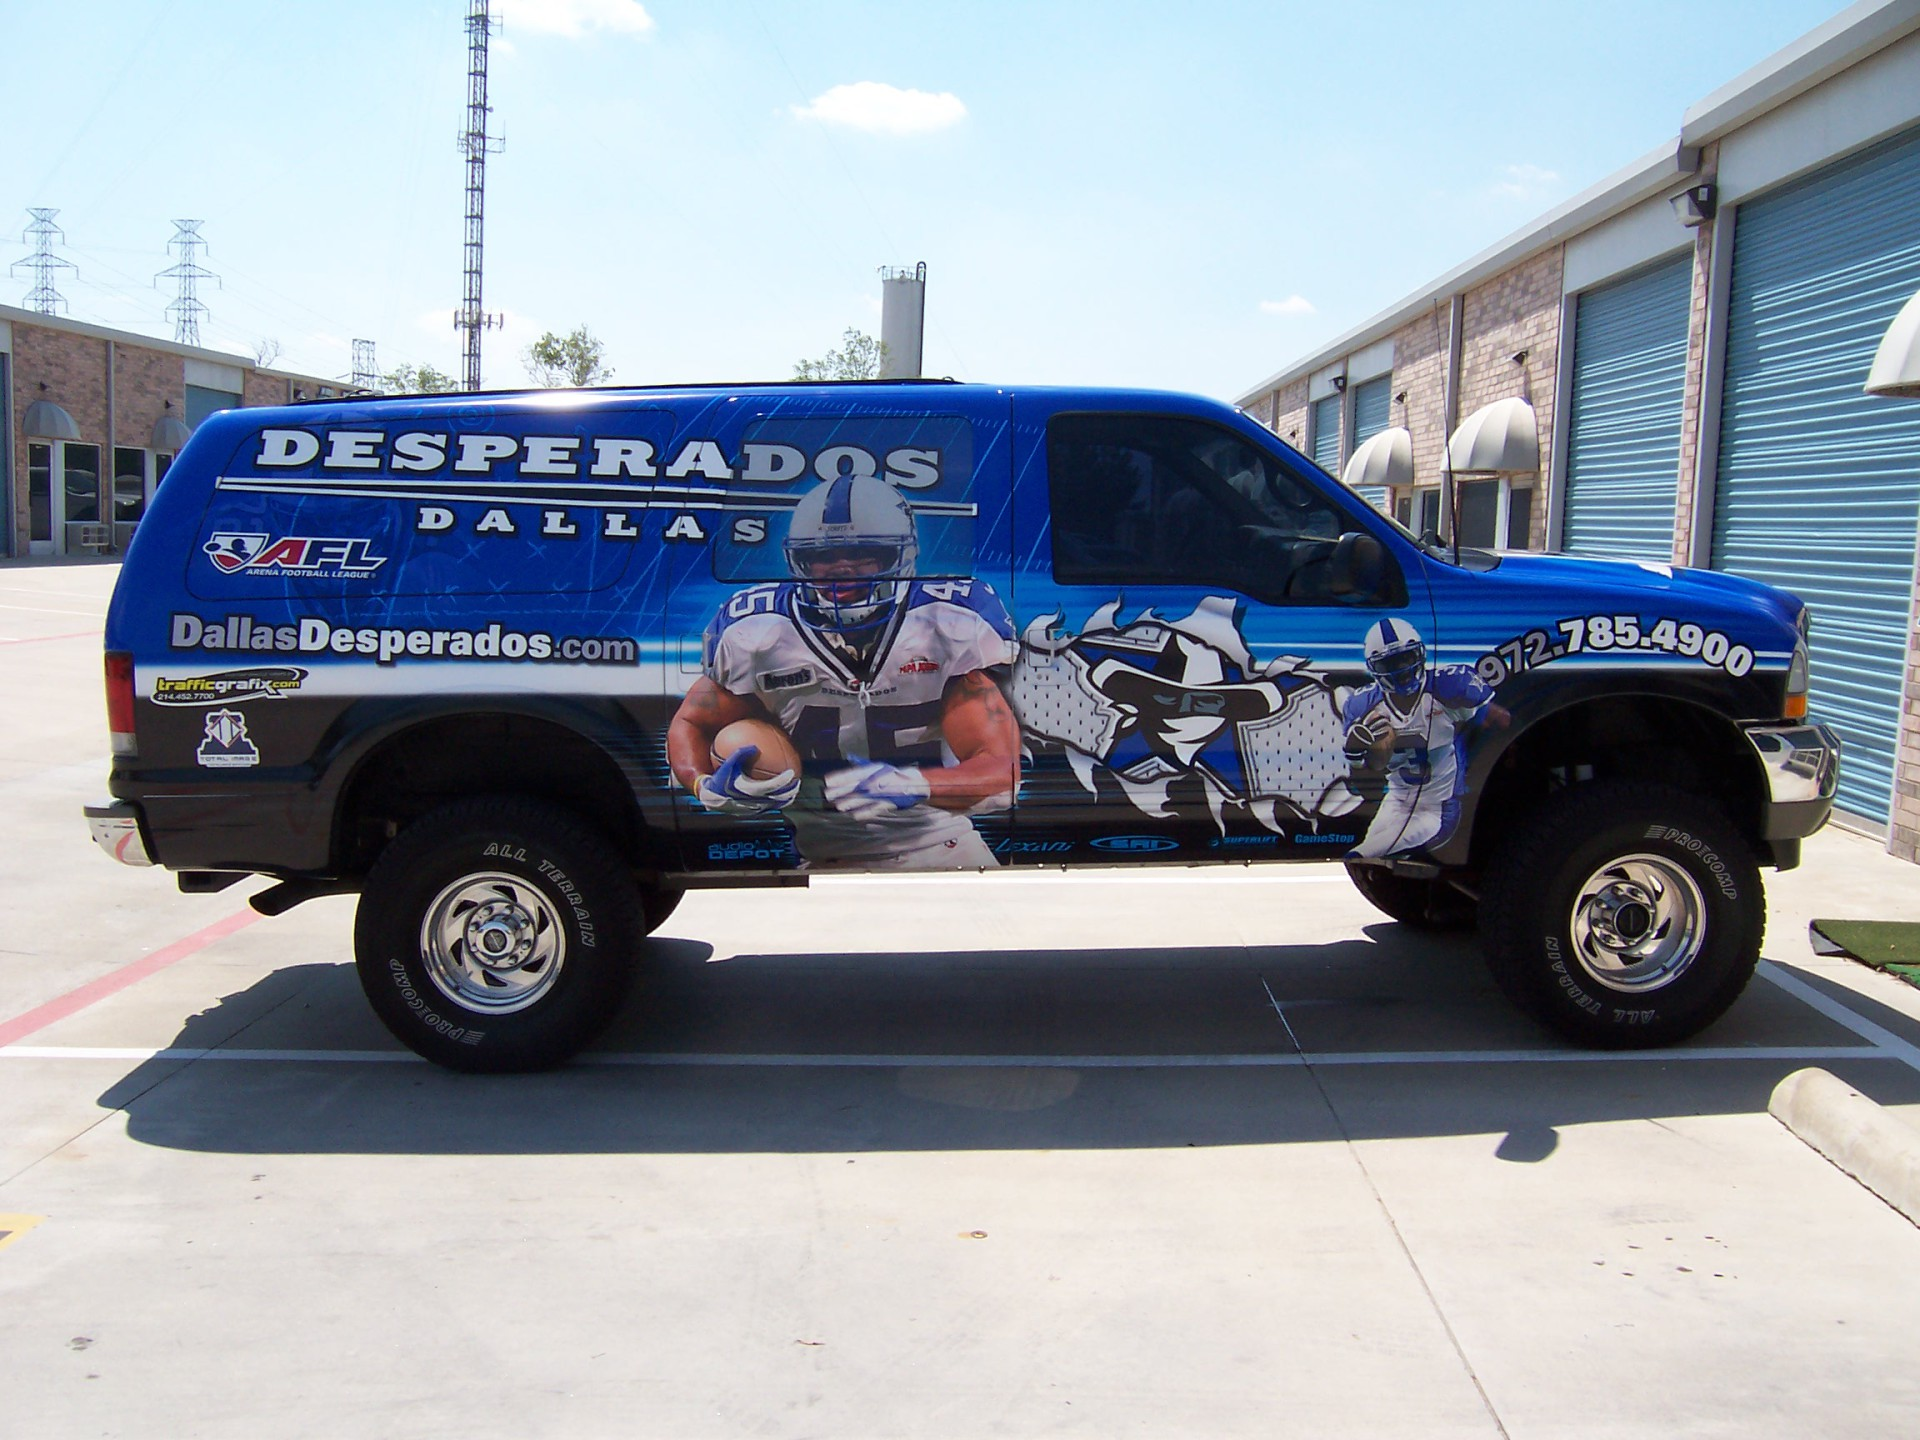 Dallas Desperados